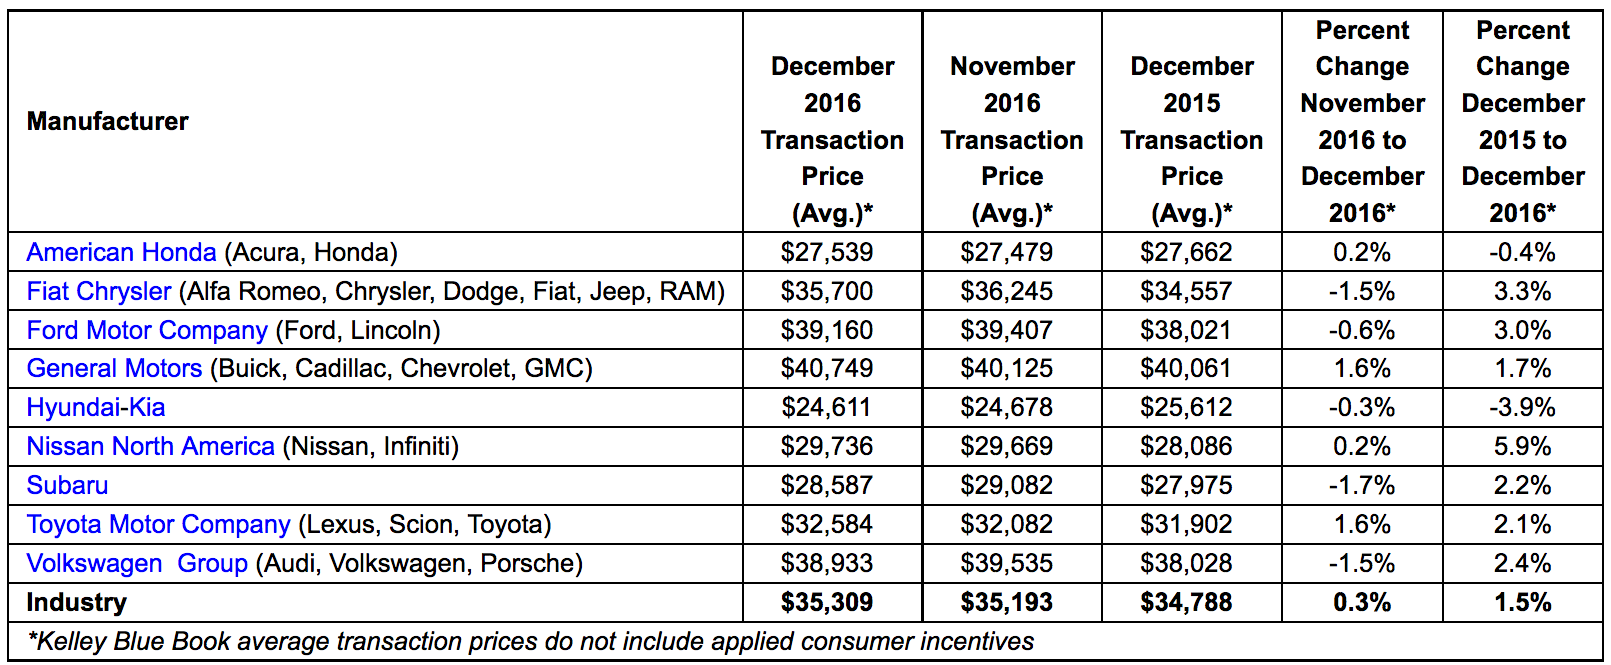 New-Car Transaction Prices Reach Record High, Increasing Nearly 2%